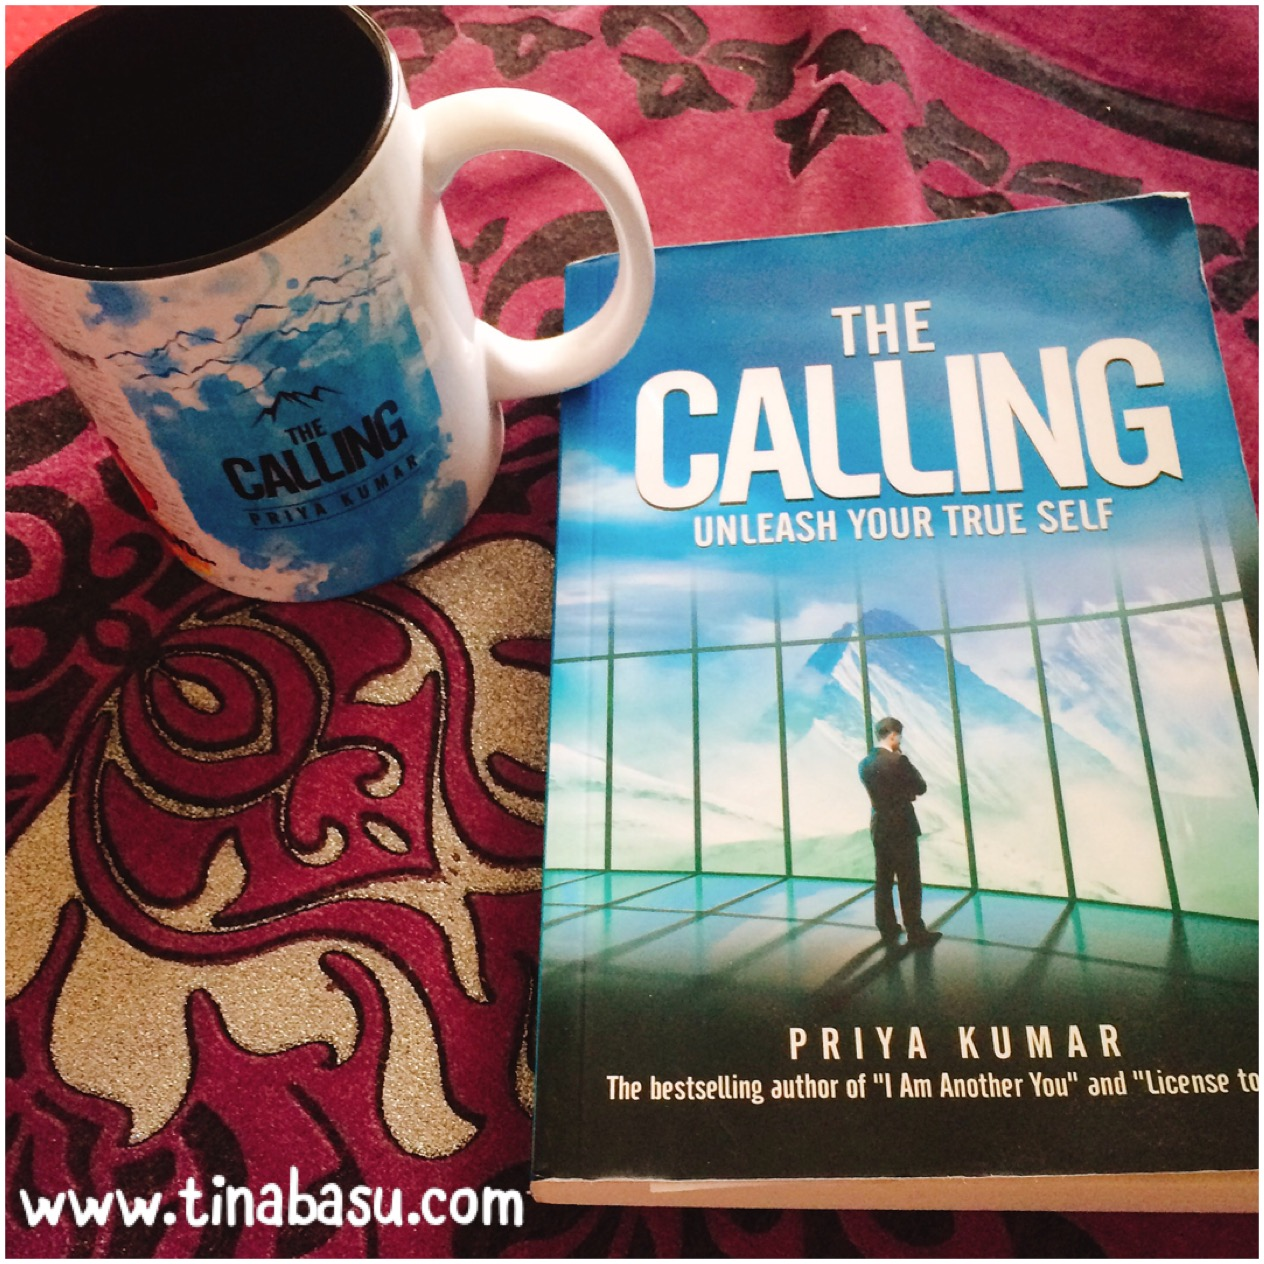 the-calling-priya-kumar-author-note